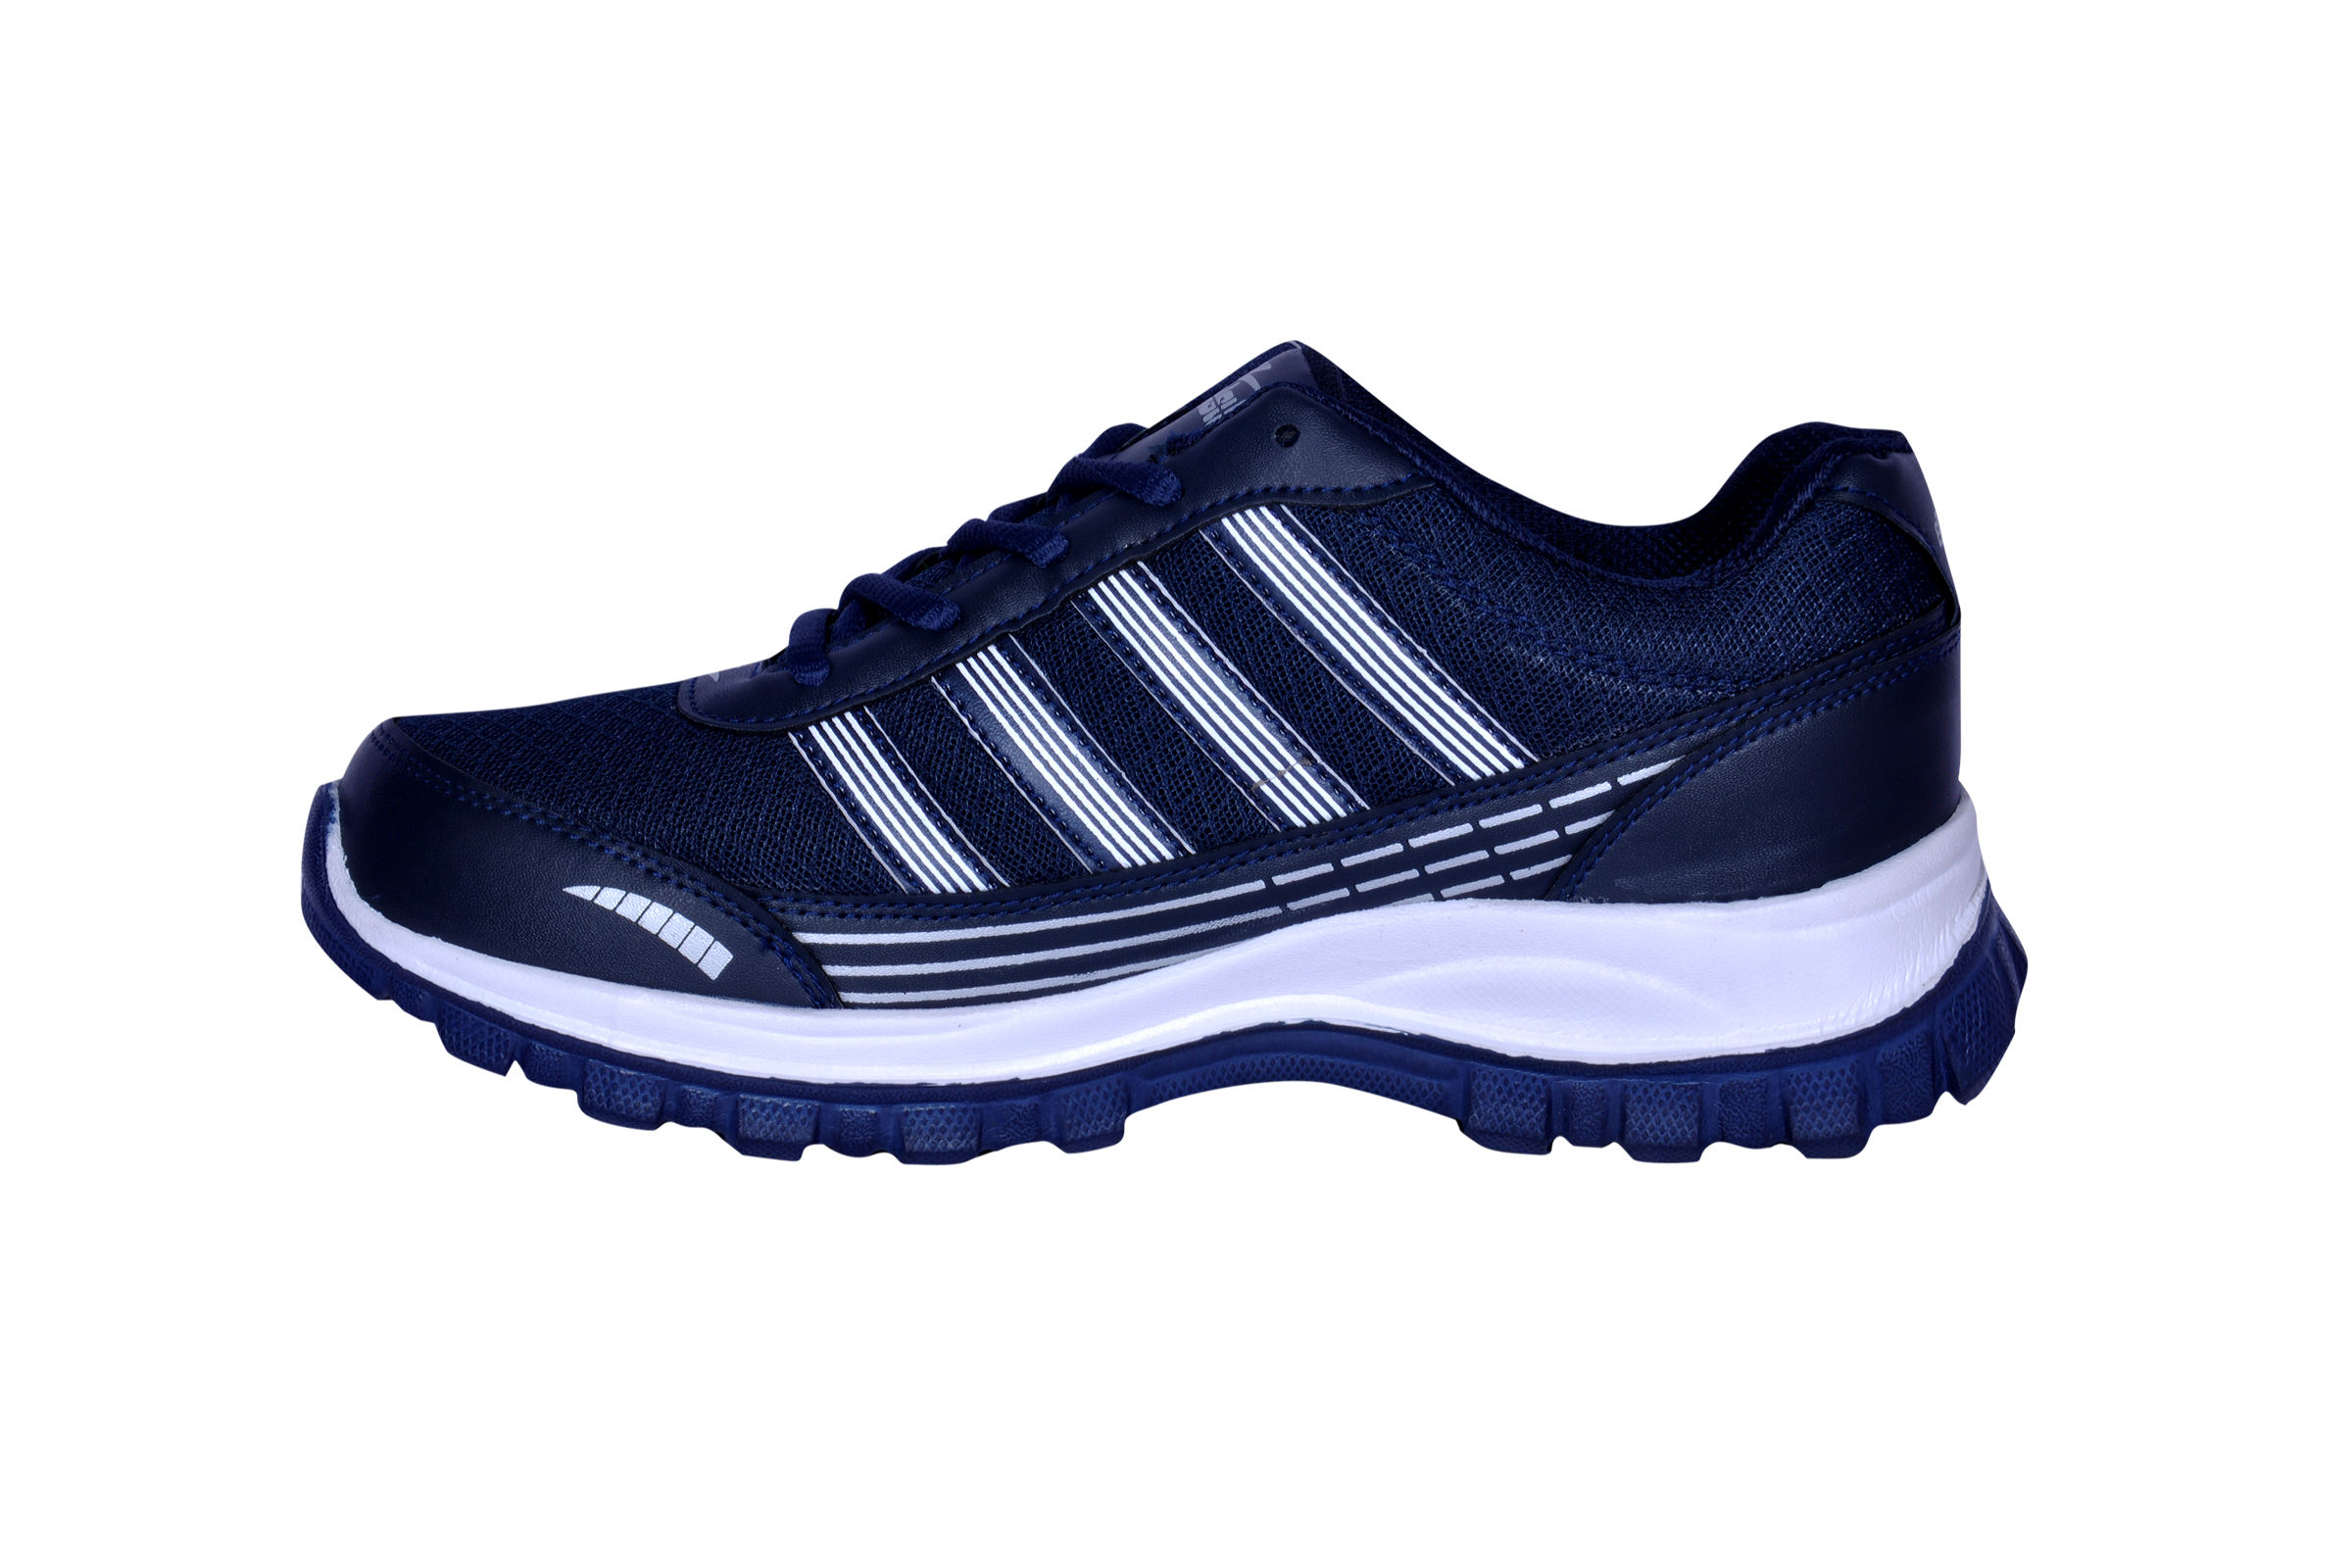 density navy blue and white sports shoes